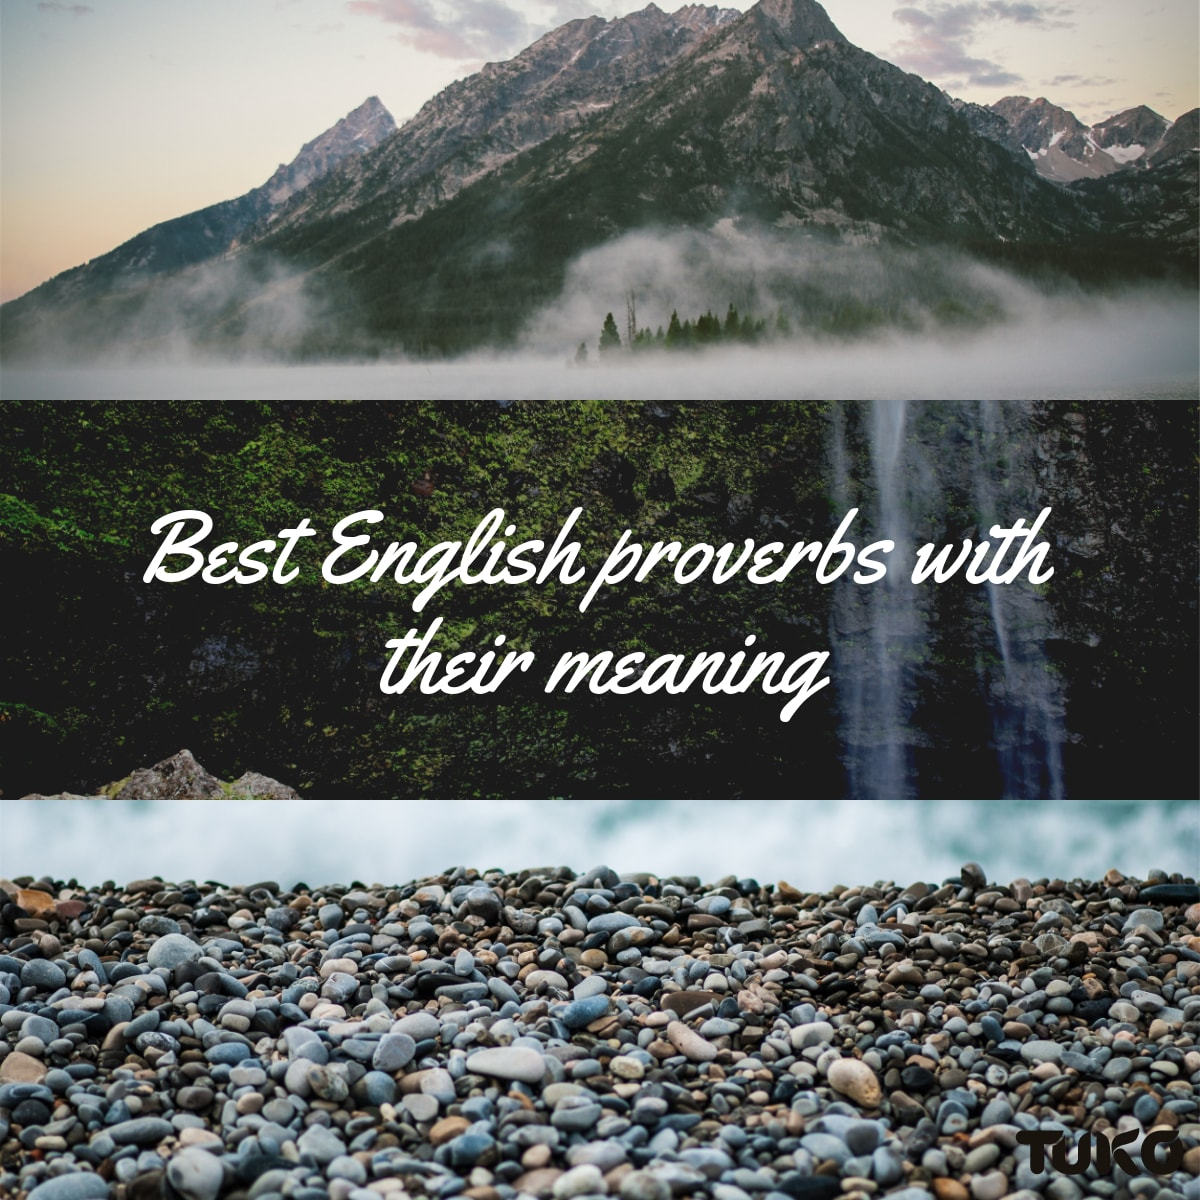 English proverbs with their meaning